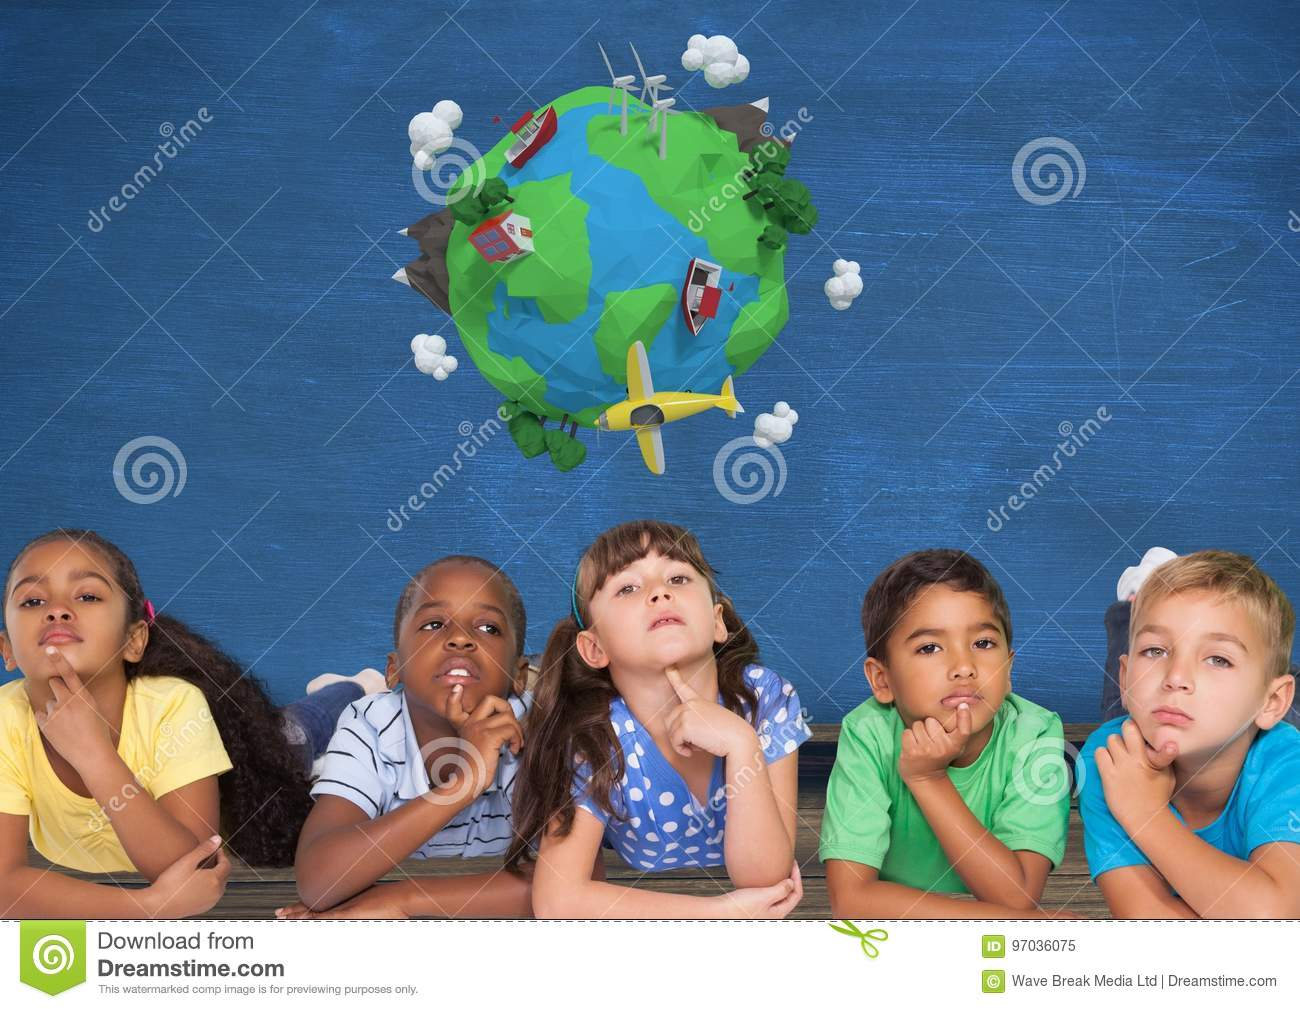 Kids thinking together and blue wall with planet earth world